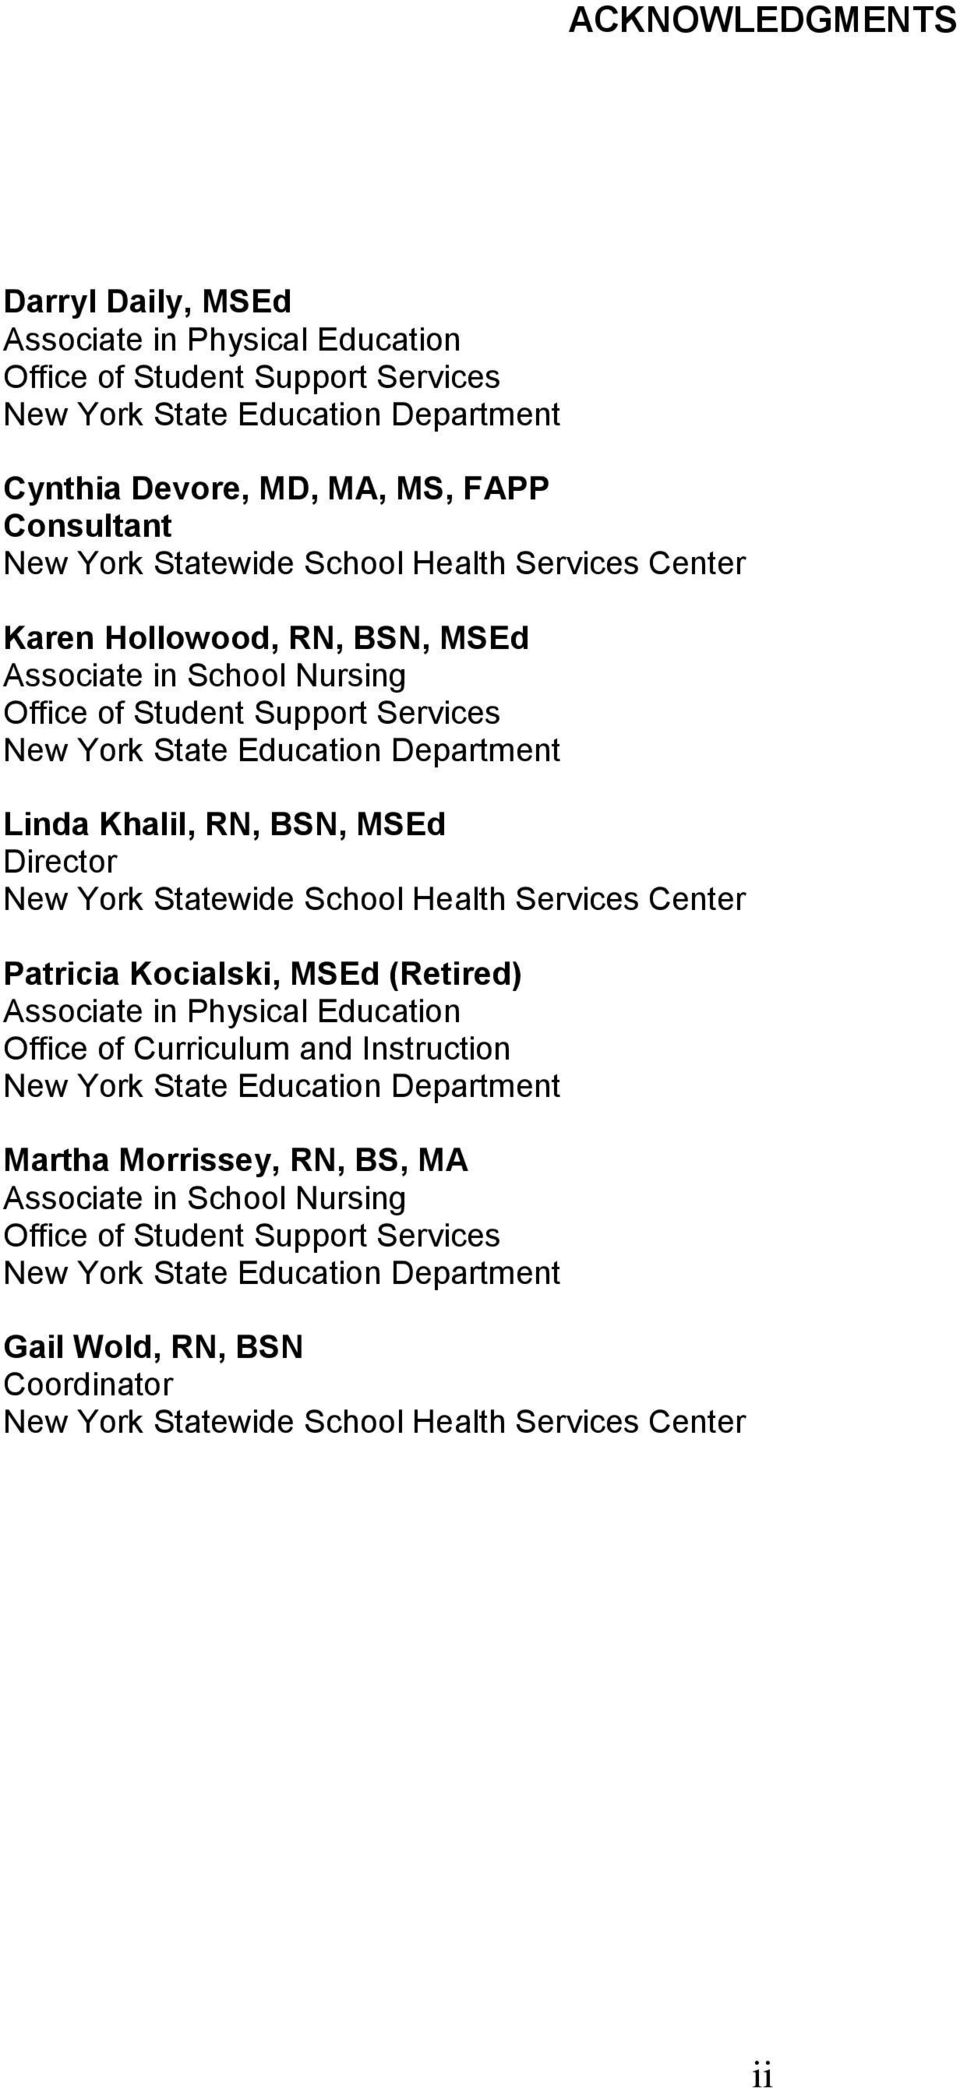 Director New York Statewide School Health Services Center Patricia Kocialski, MSEd (Retired) Associate in Physical Education Office of Curriculum and Instruction New York State Education Department